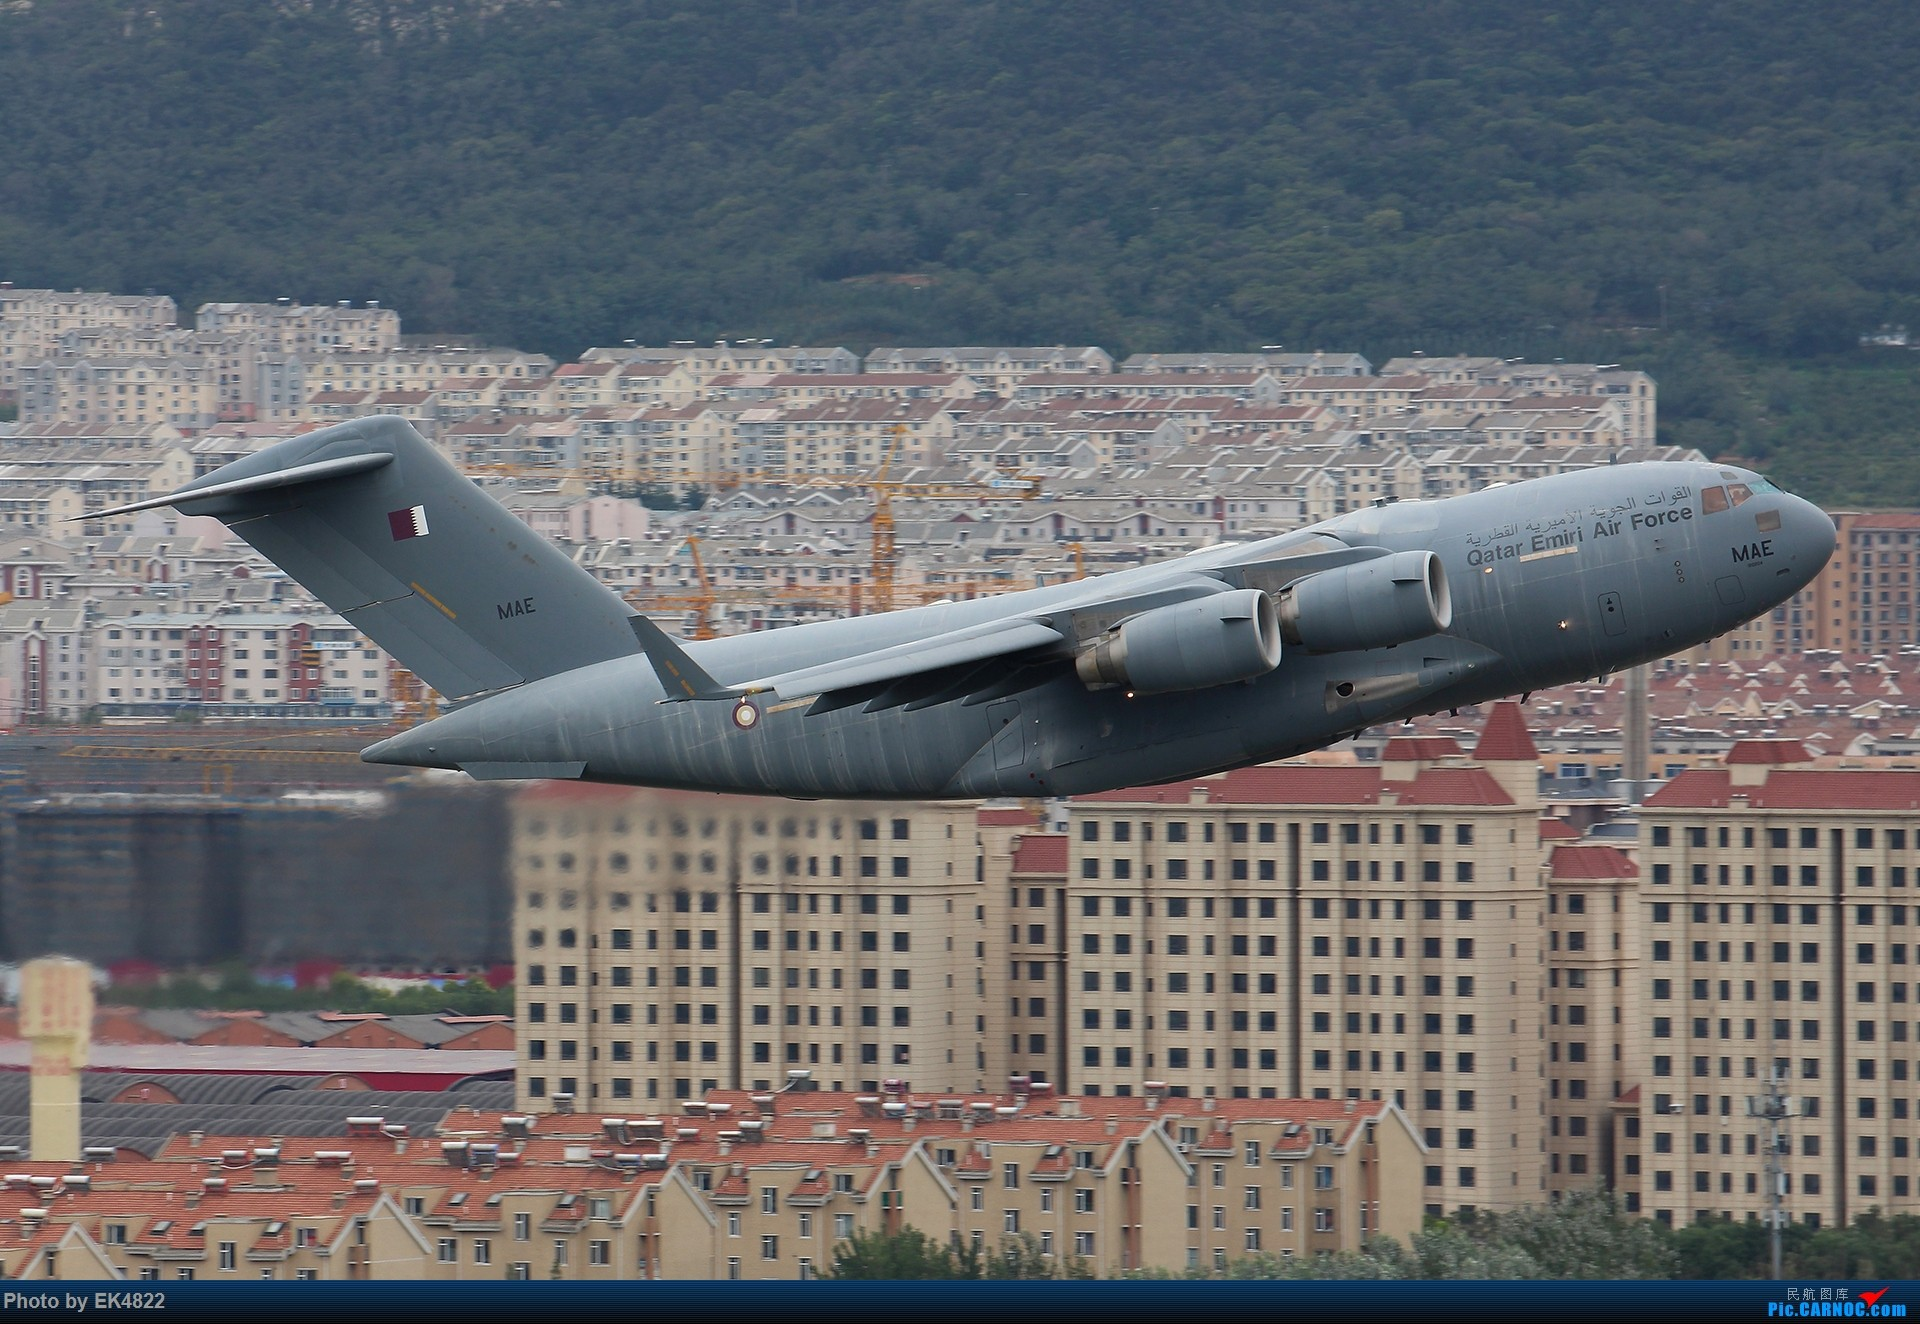 [原创][ZYTL] So dirty...... BOEING C-17A GLOBEMASTERIII A7-MAE 大连周水子国际机场